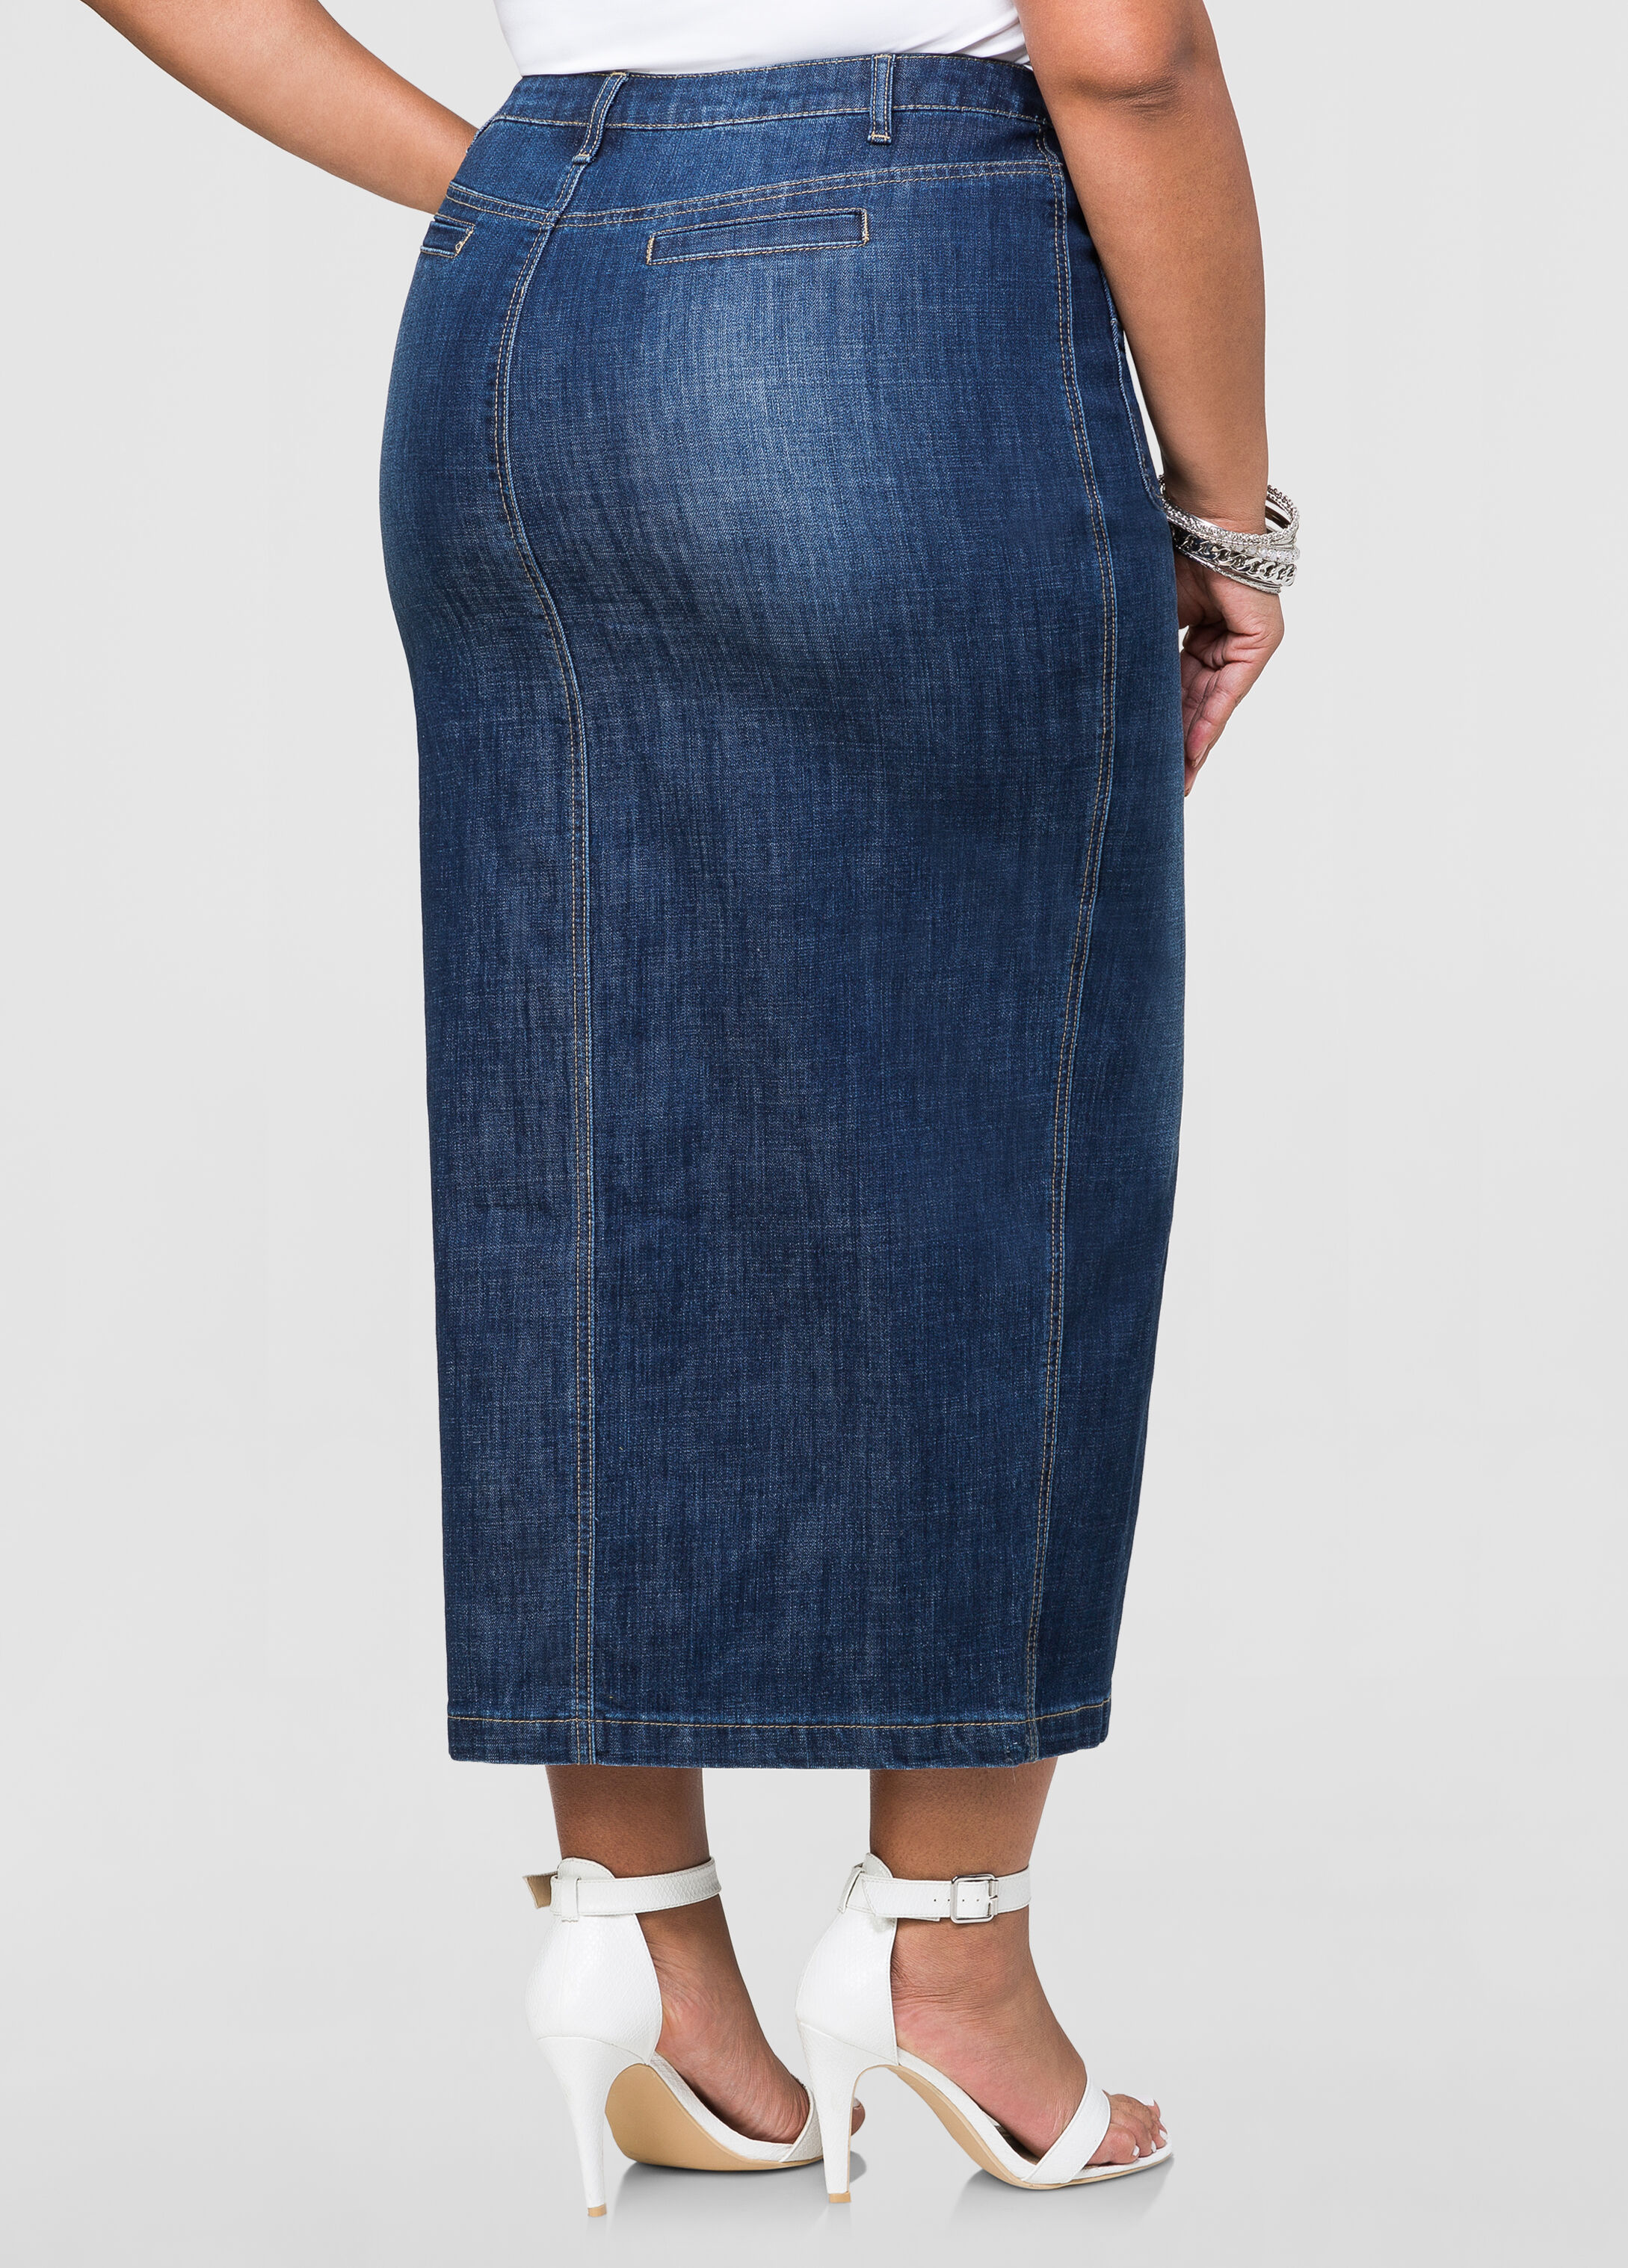 Plus Size Long Jean Skirts mRU6iLC6